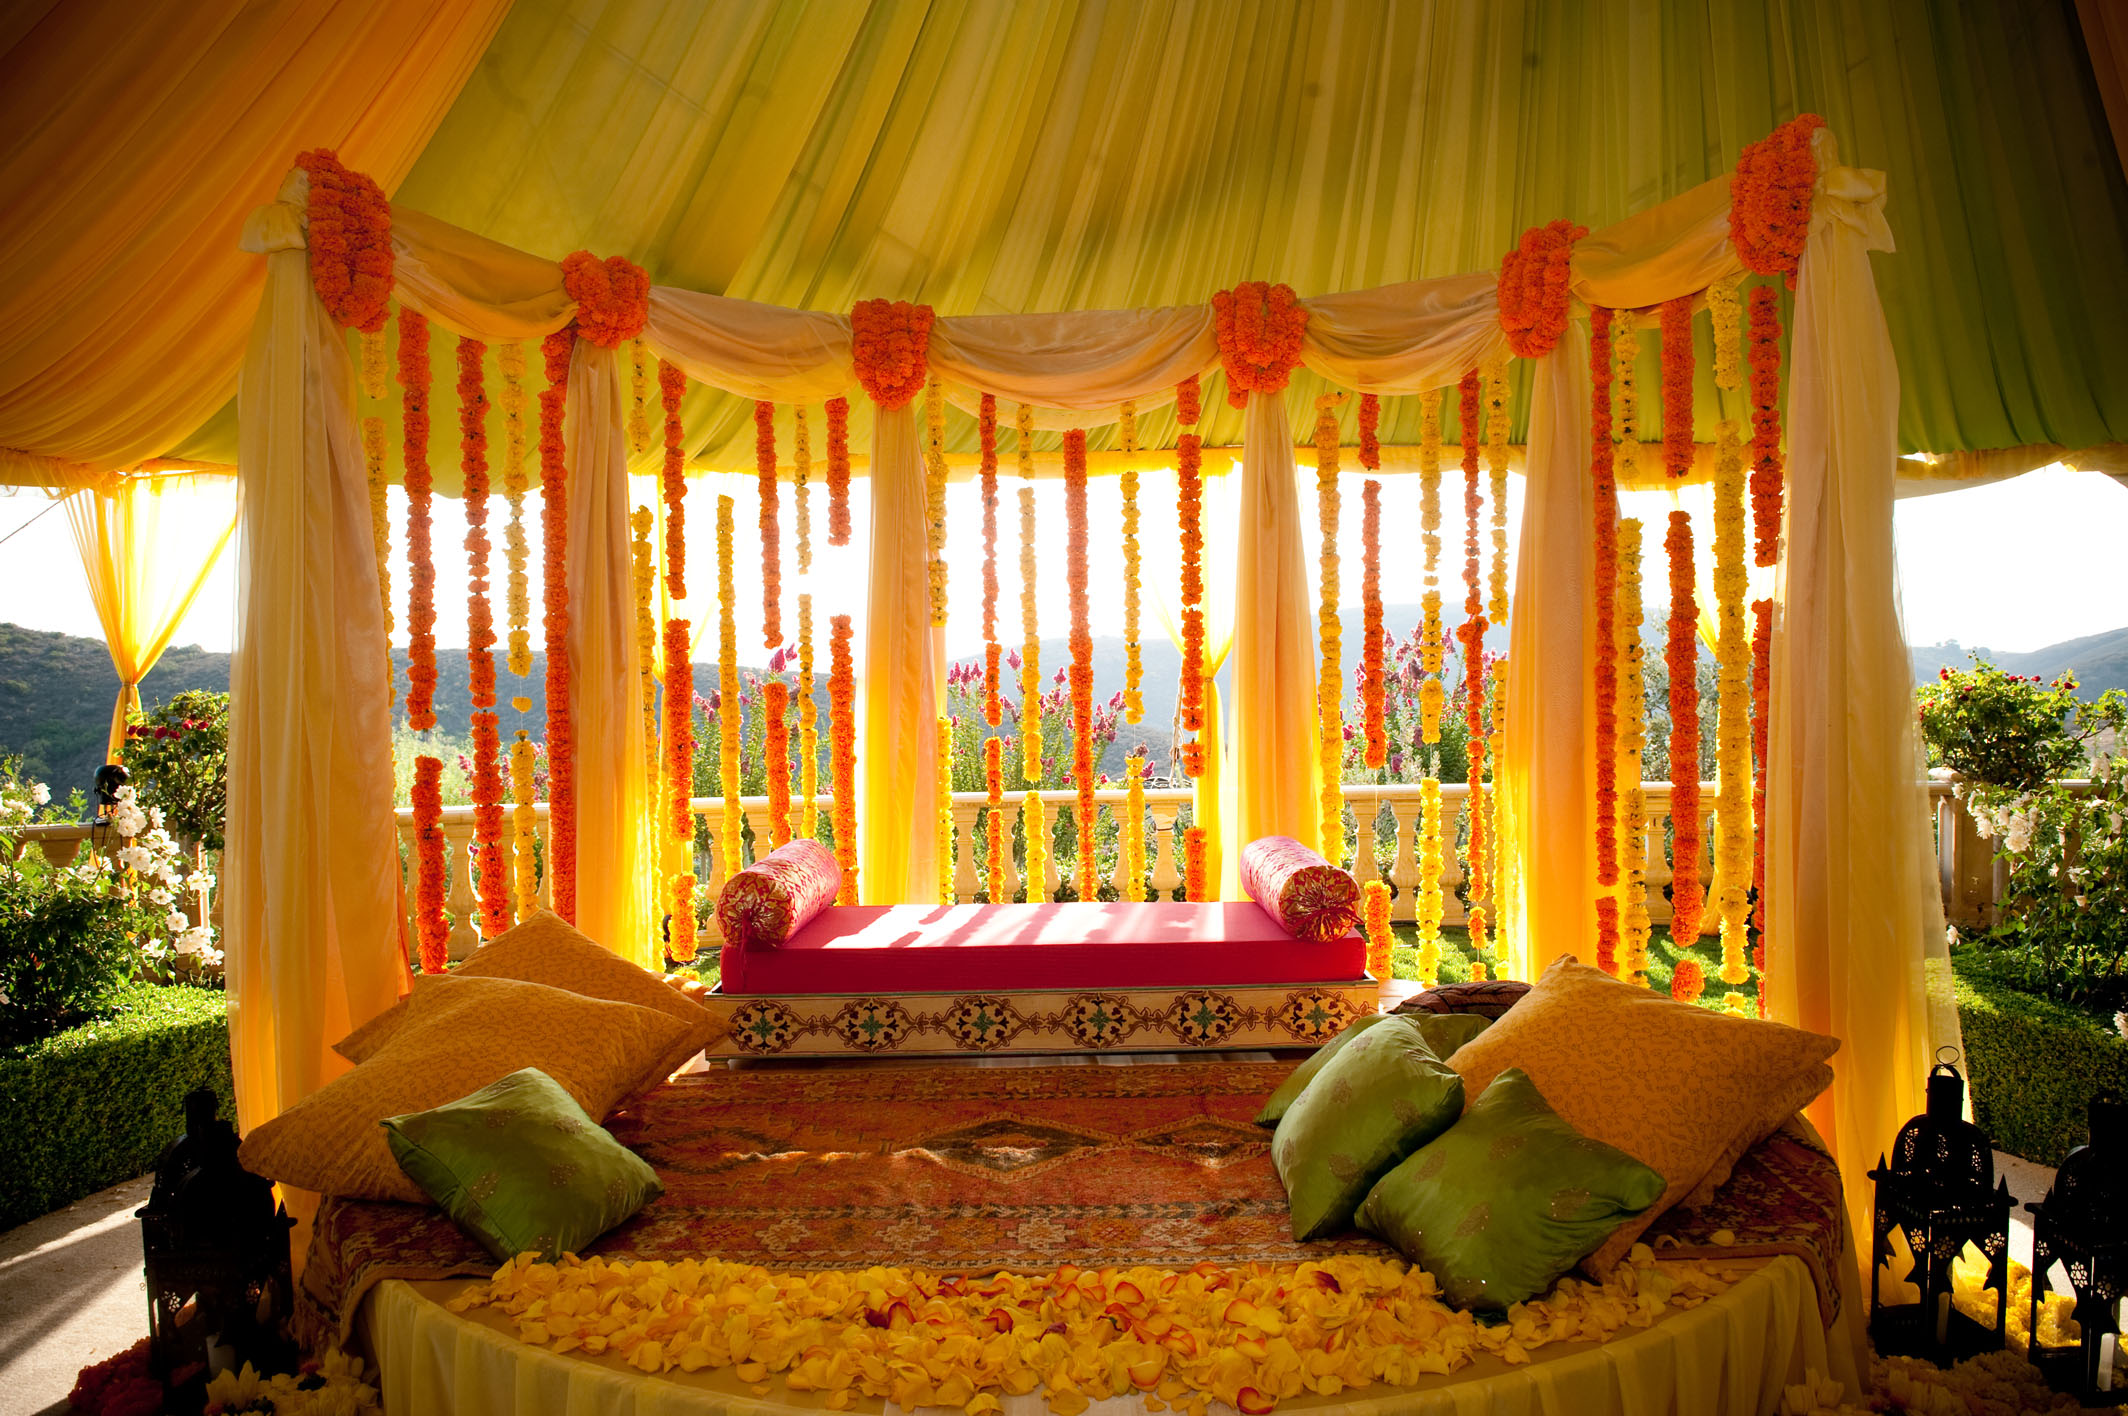 Indian wedding decorations mona bagla Home hall decoration images